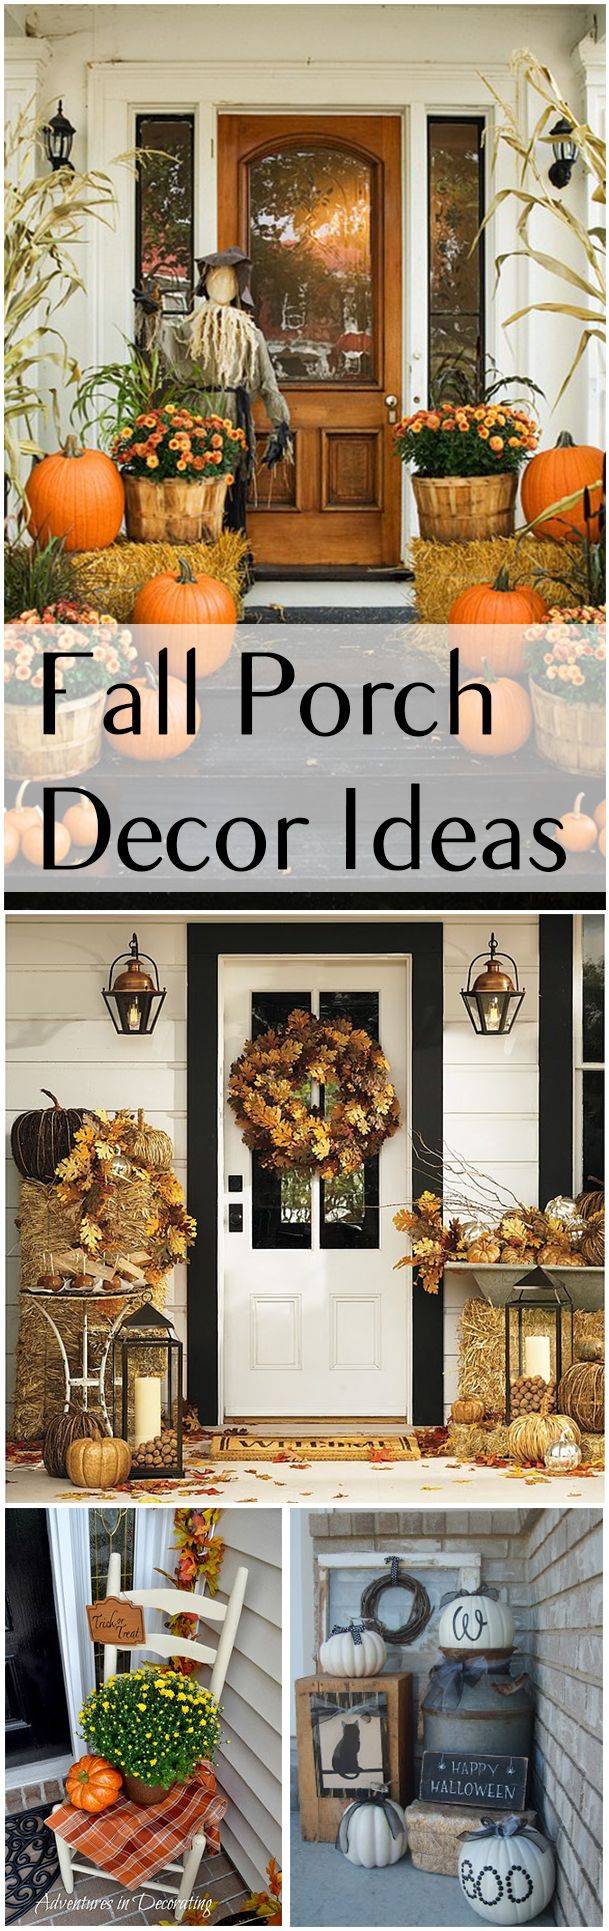 864 best fall decorating ideas images on pinterest fall fall fall porch decor ideas